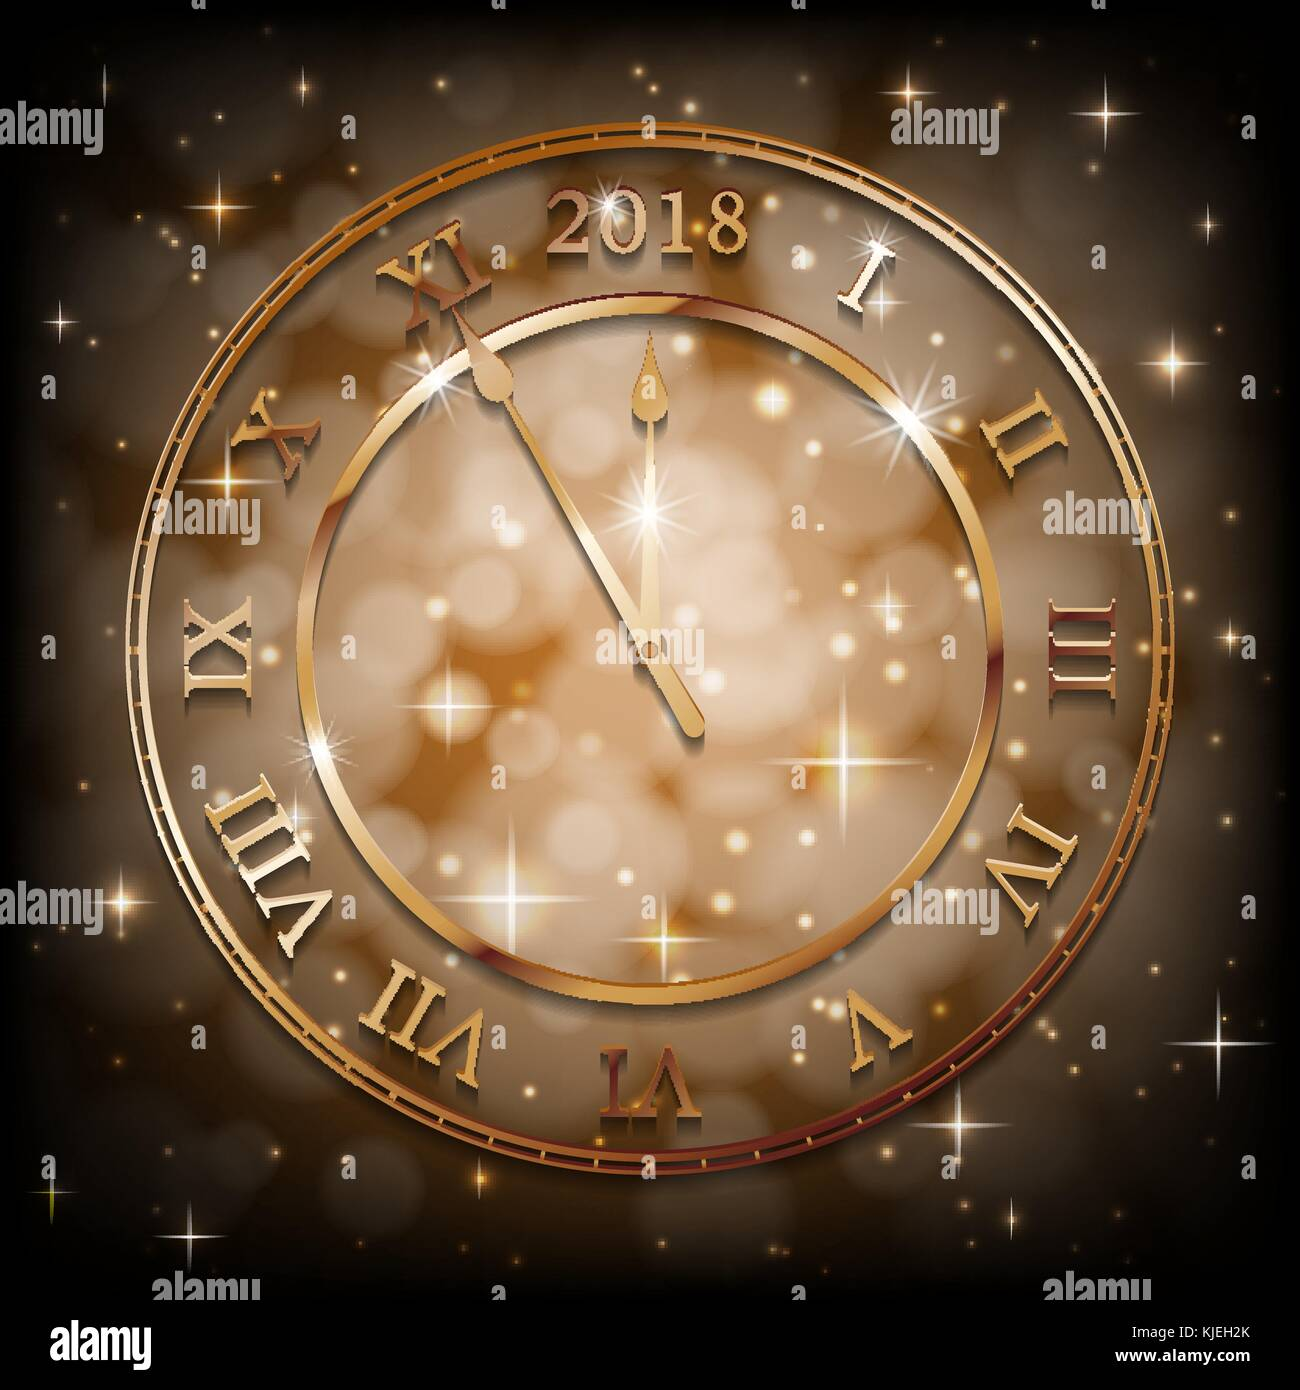 new year 2018 gold background with bronze old clock greetings new year banner with sepia background vector illustration